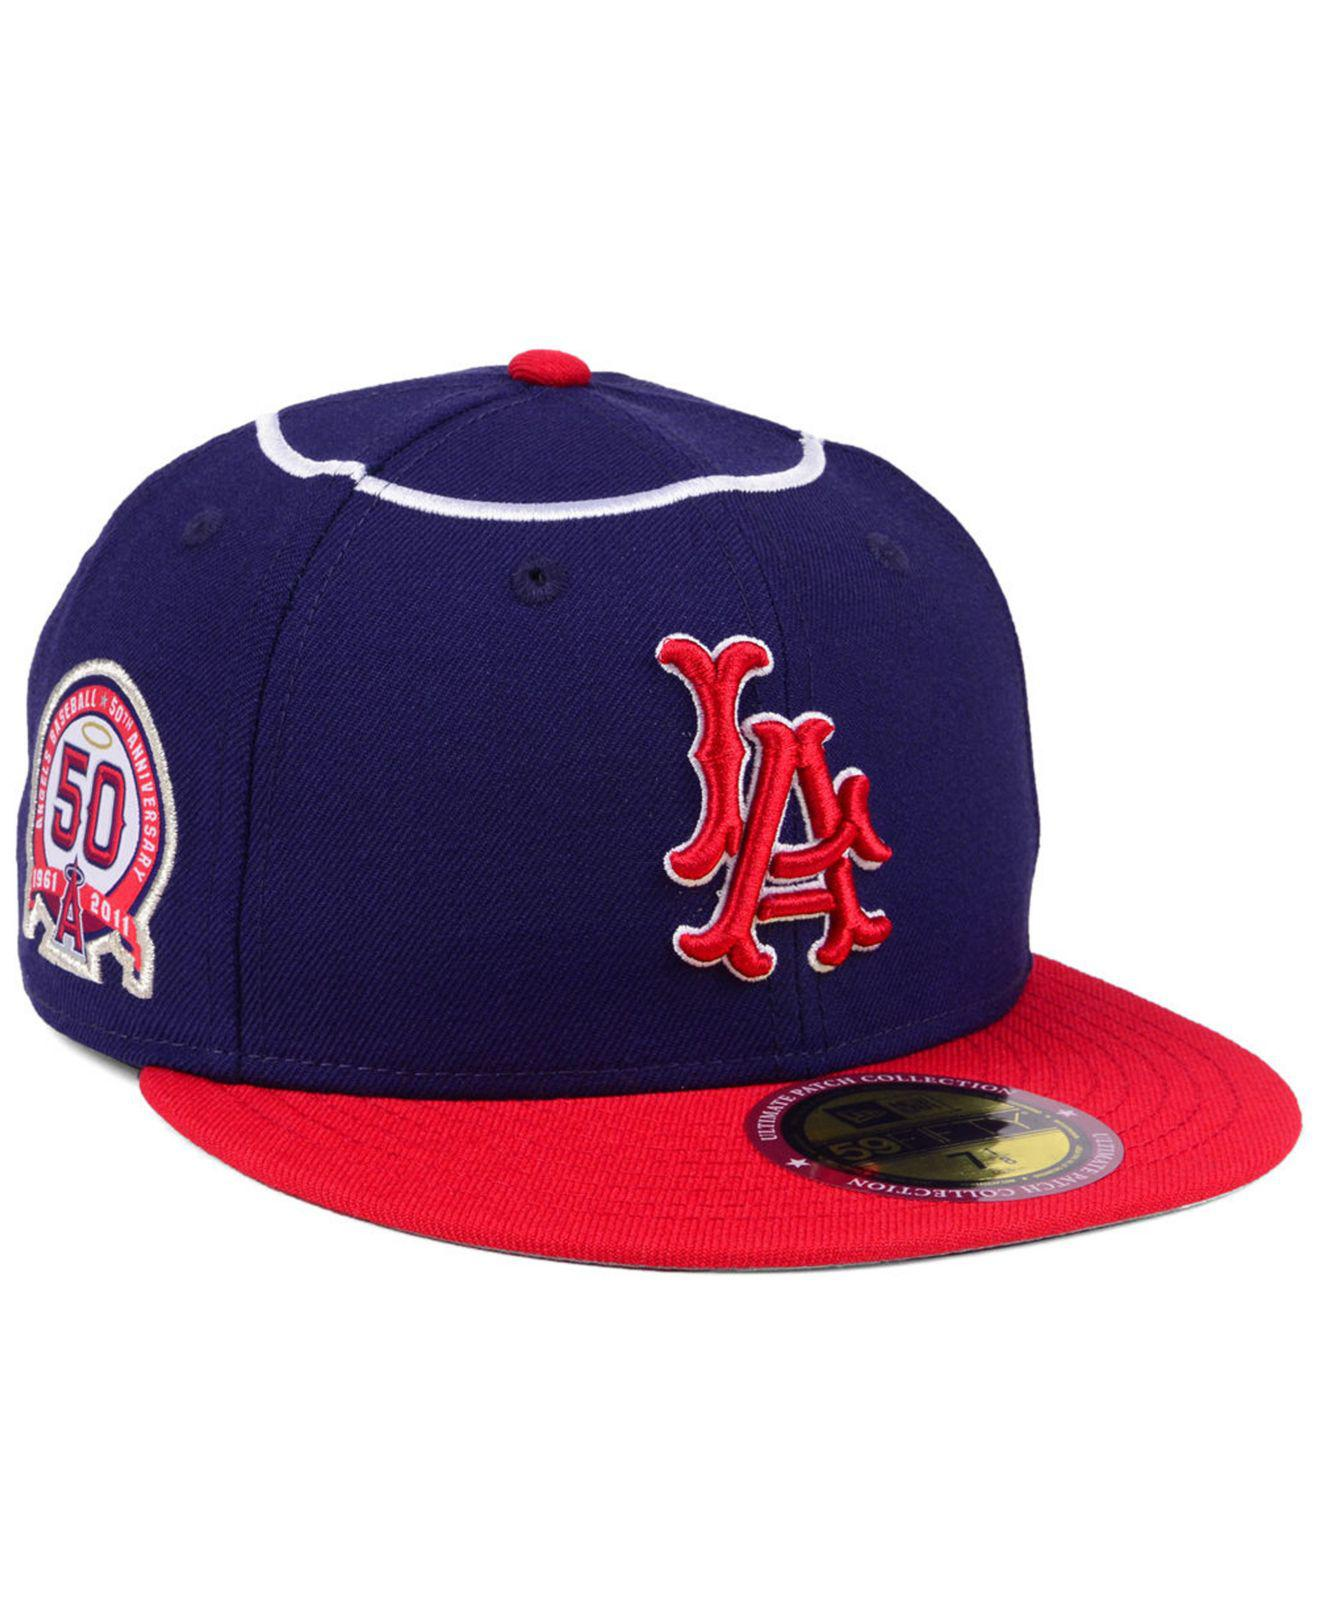 best sneakers 18261 8437a ... Ultimate Patch Collection Anniversary 59fifty Cap for Men - Lyst. View  fullscreen